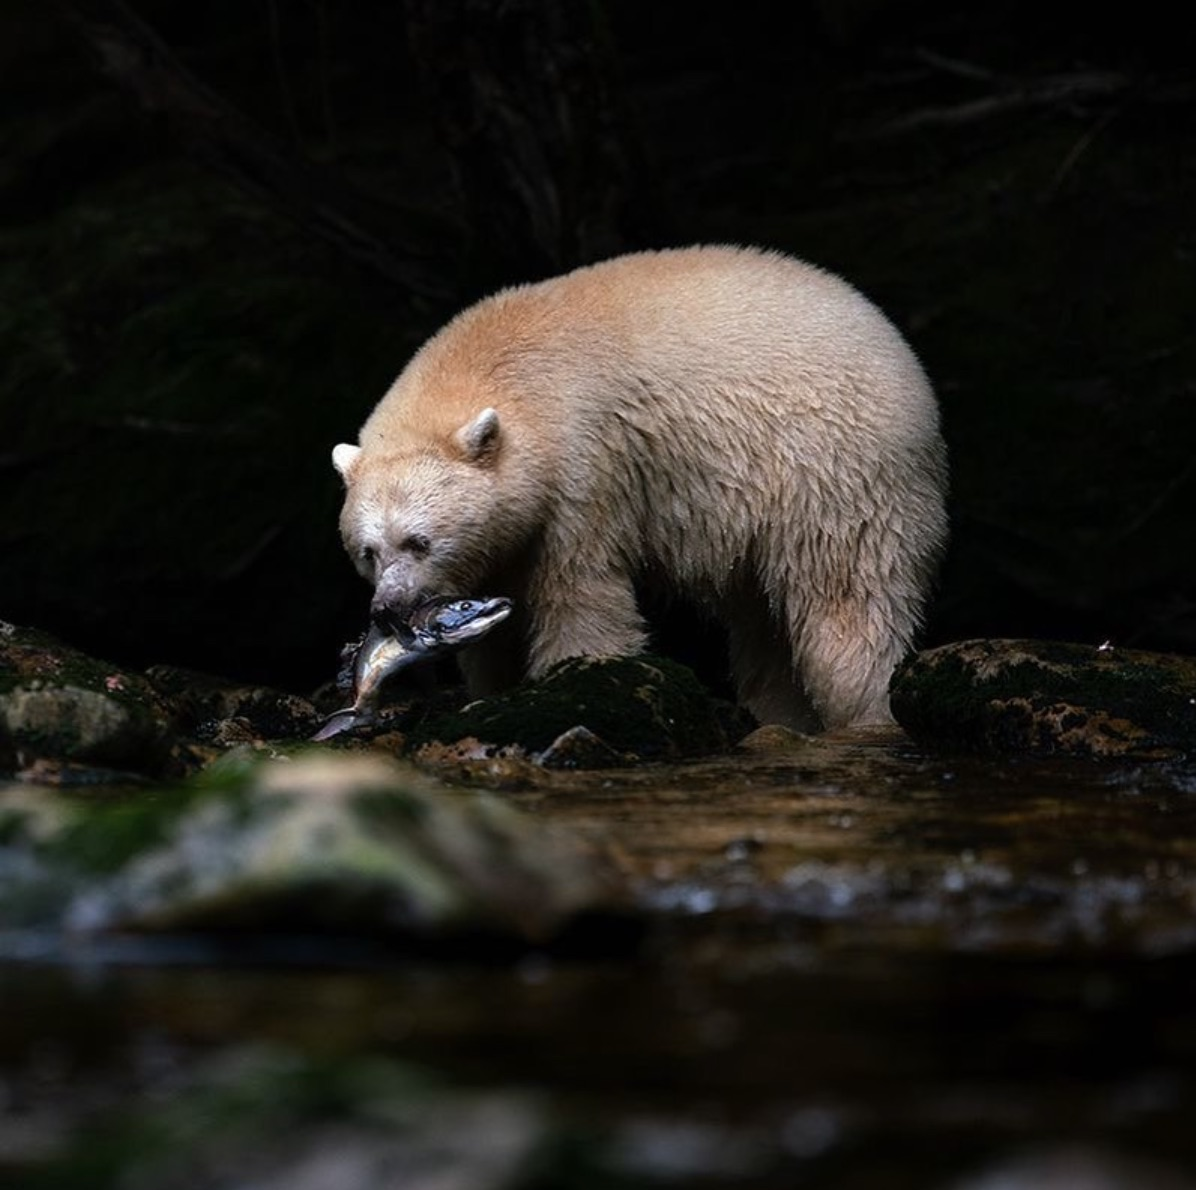 Dark background with a Spirit Bear holding a salmon in its mouth while standing at the edge of a river.